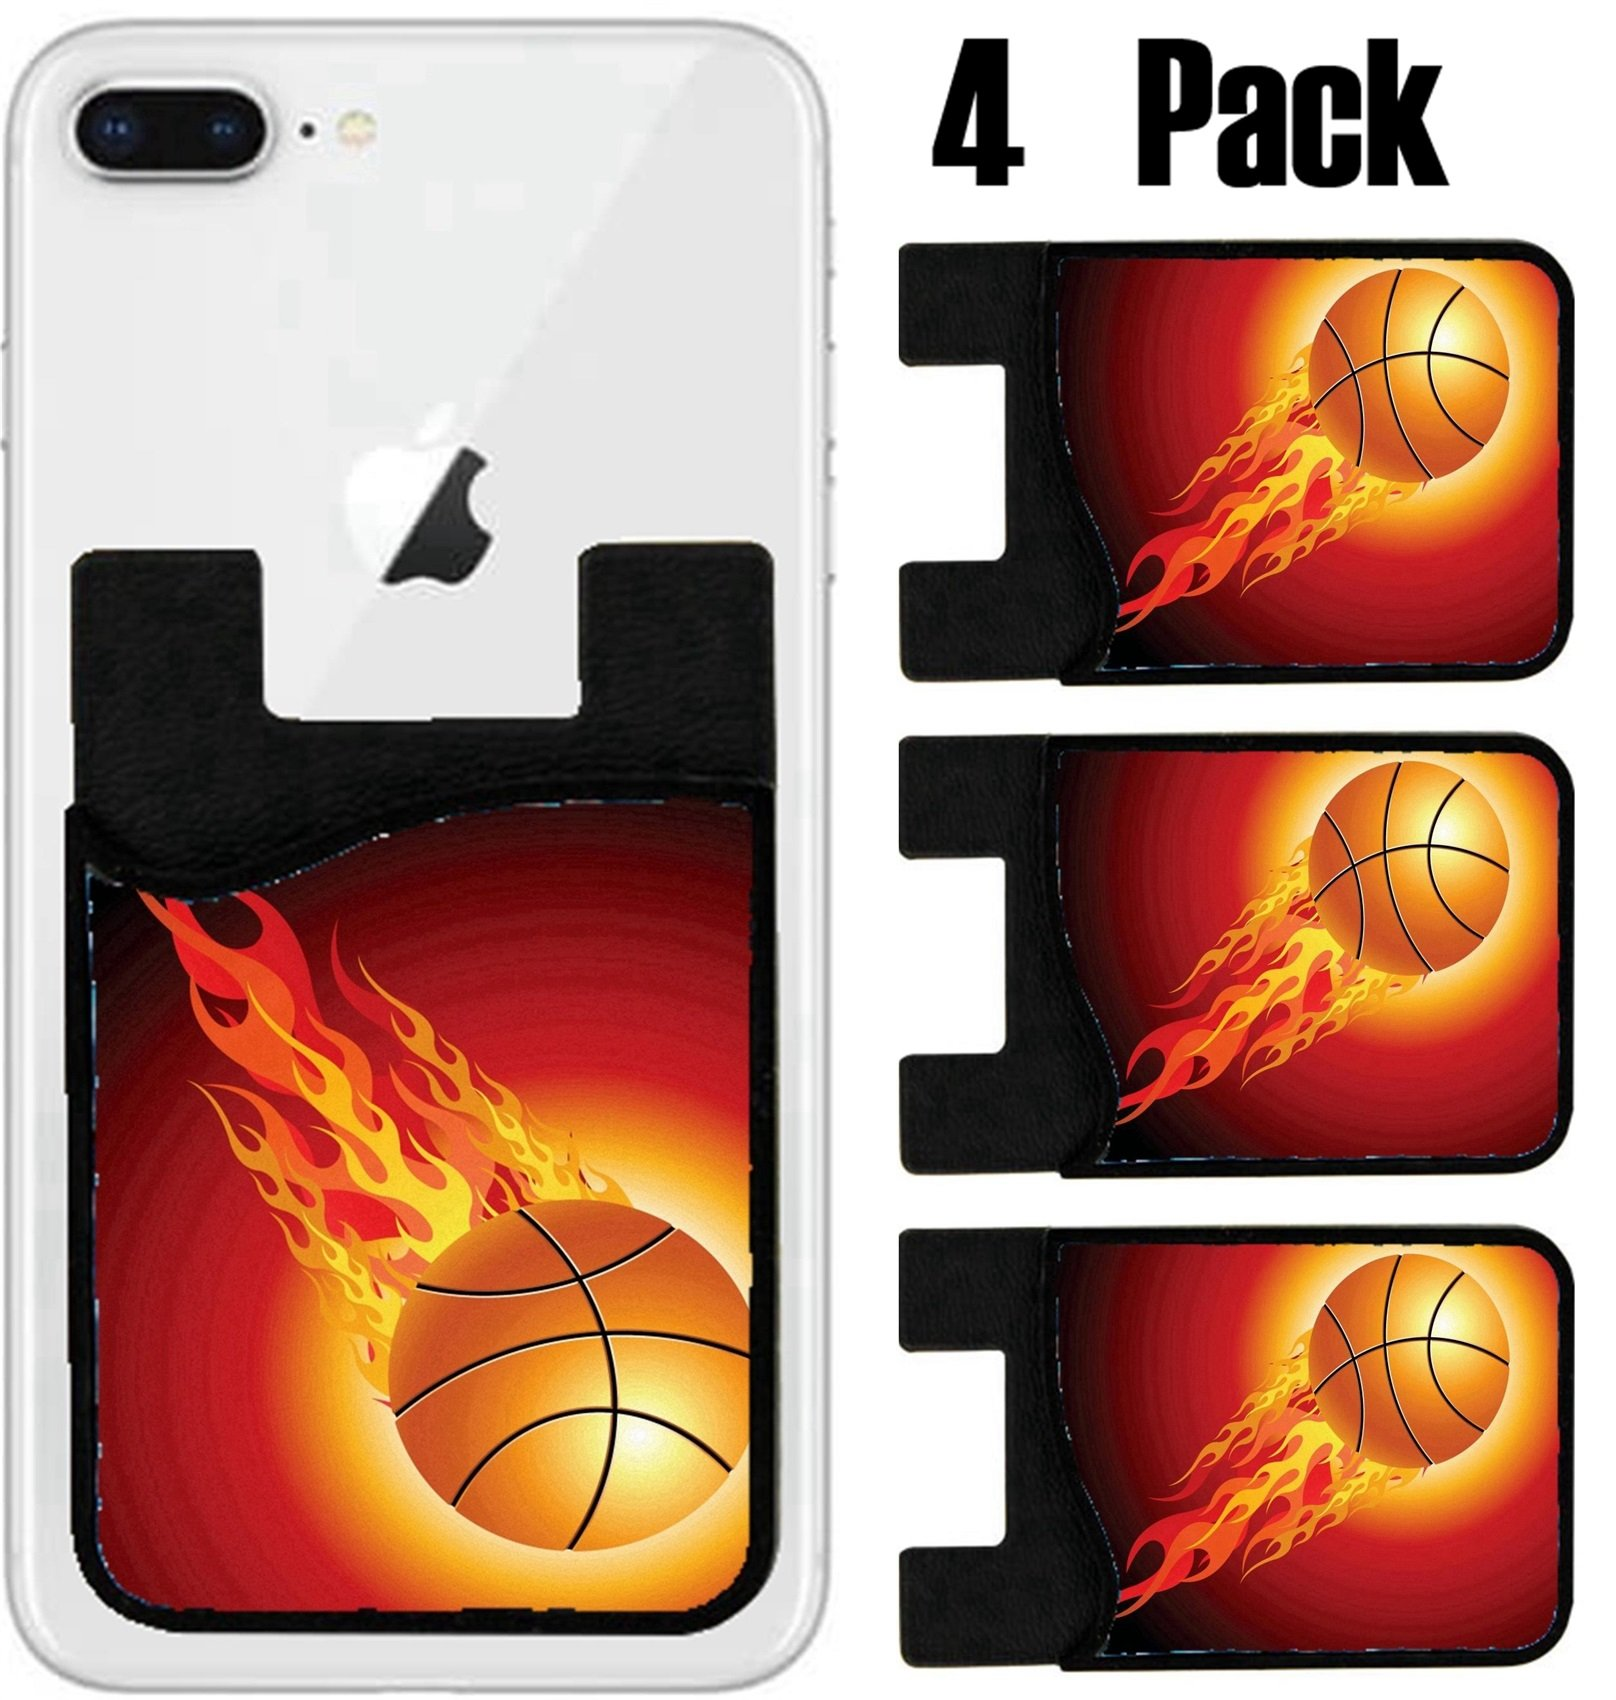 MSD Phone Card holder, sleeve/wallet for iPhone Samsung Android and all smartphones with removable microfiber screen cleaner Silicone card Caddy(4 Pack) Fiery basketball ball flying upwards on a black